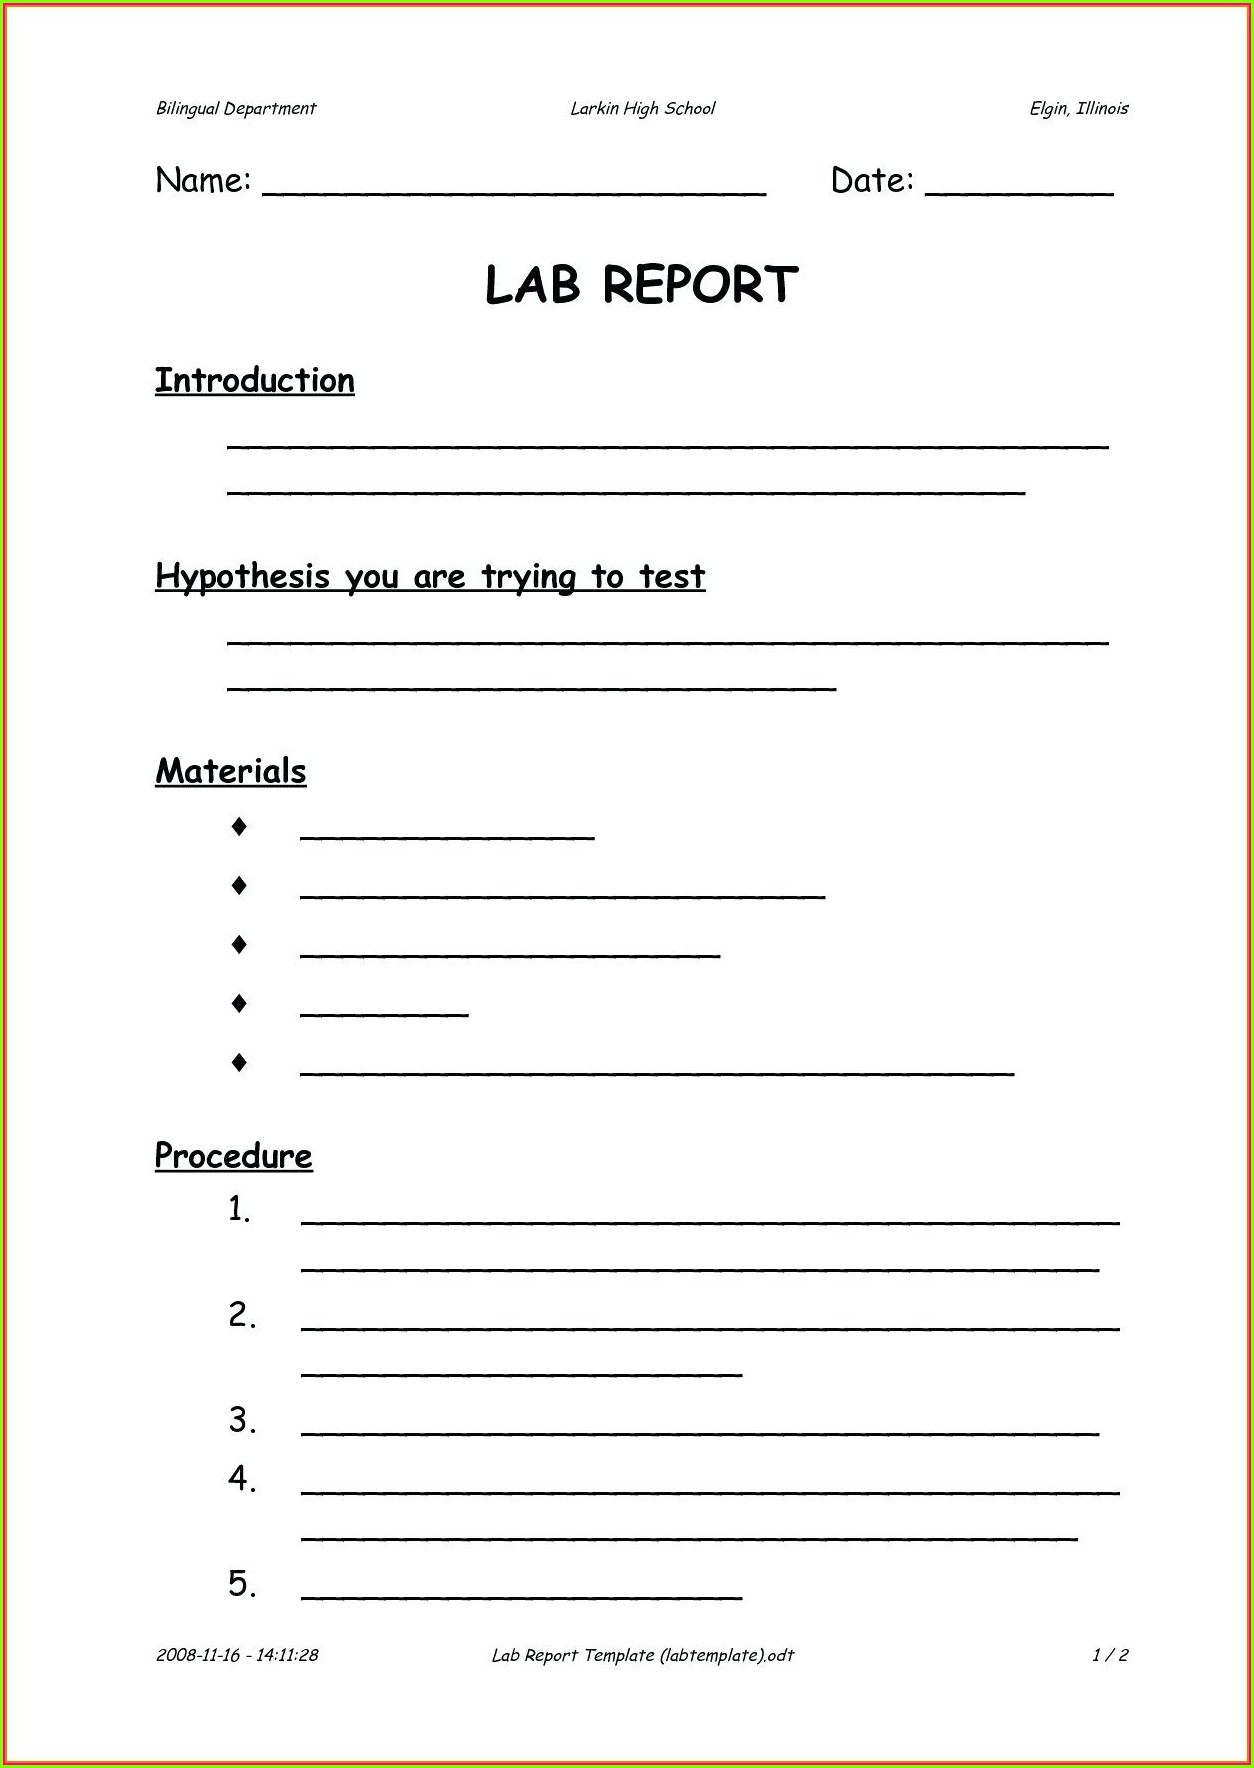 Scientific Method Worksheet 5th Grade High School Scientific Method Worksheet Printable Worksheets